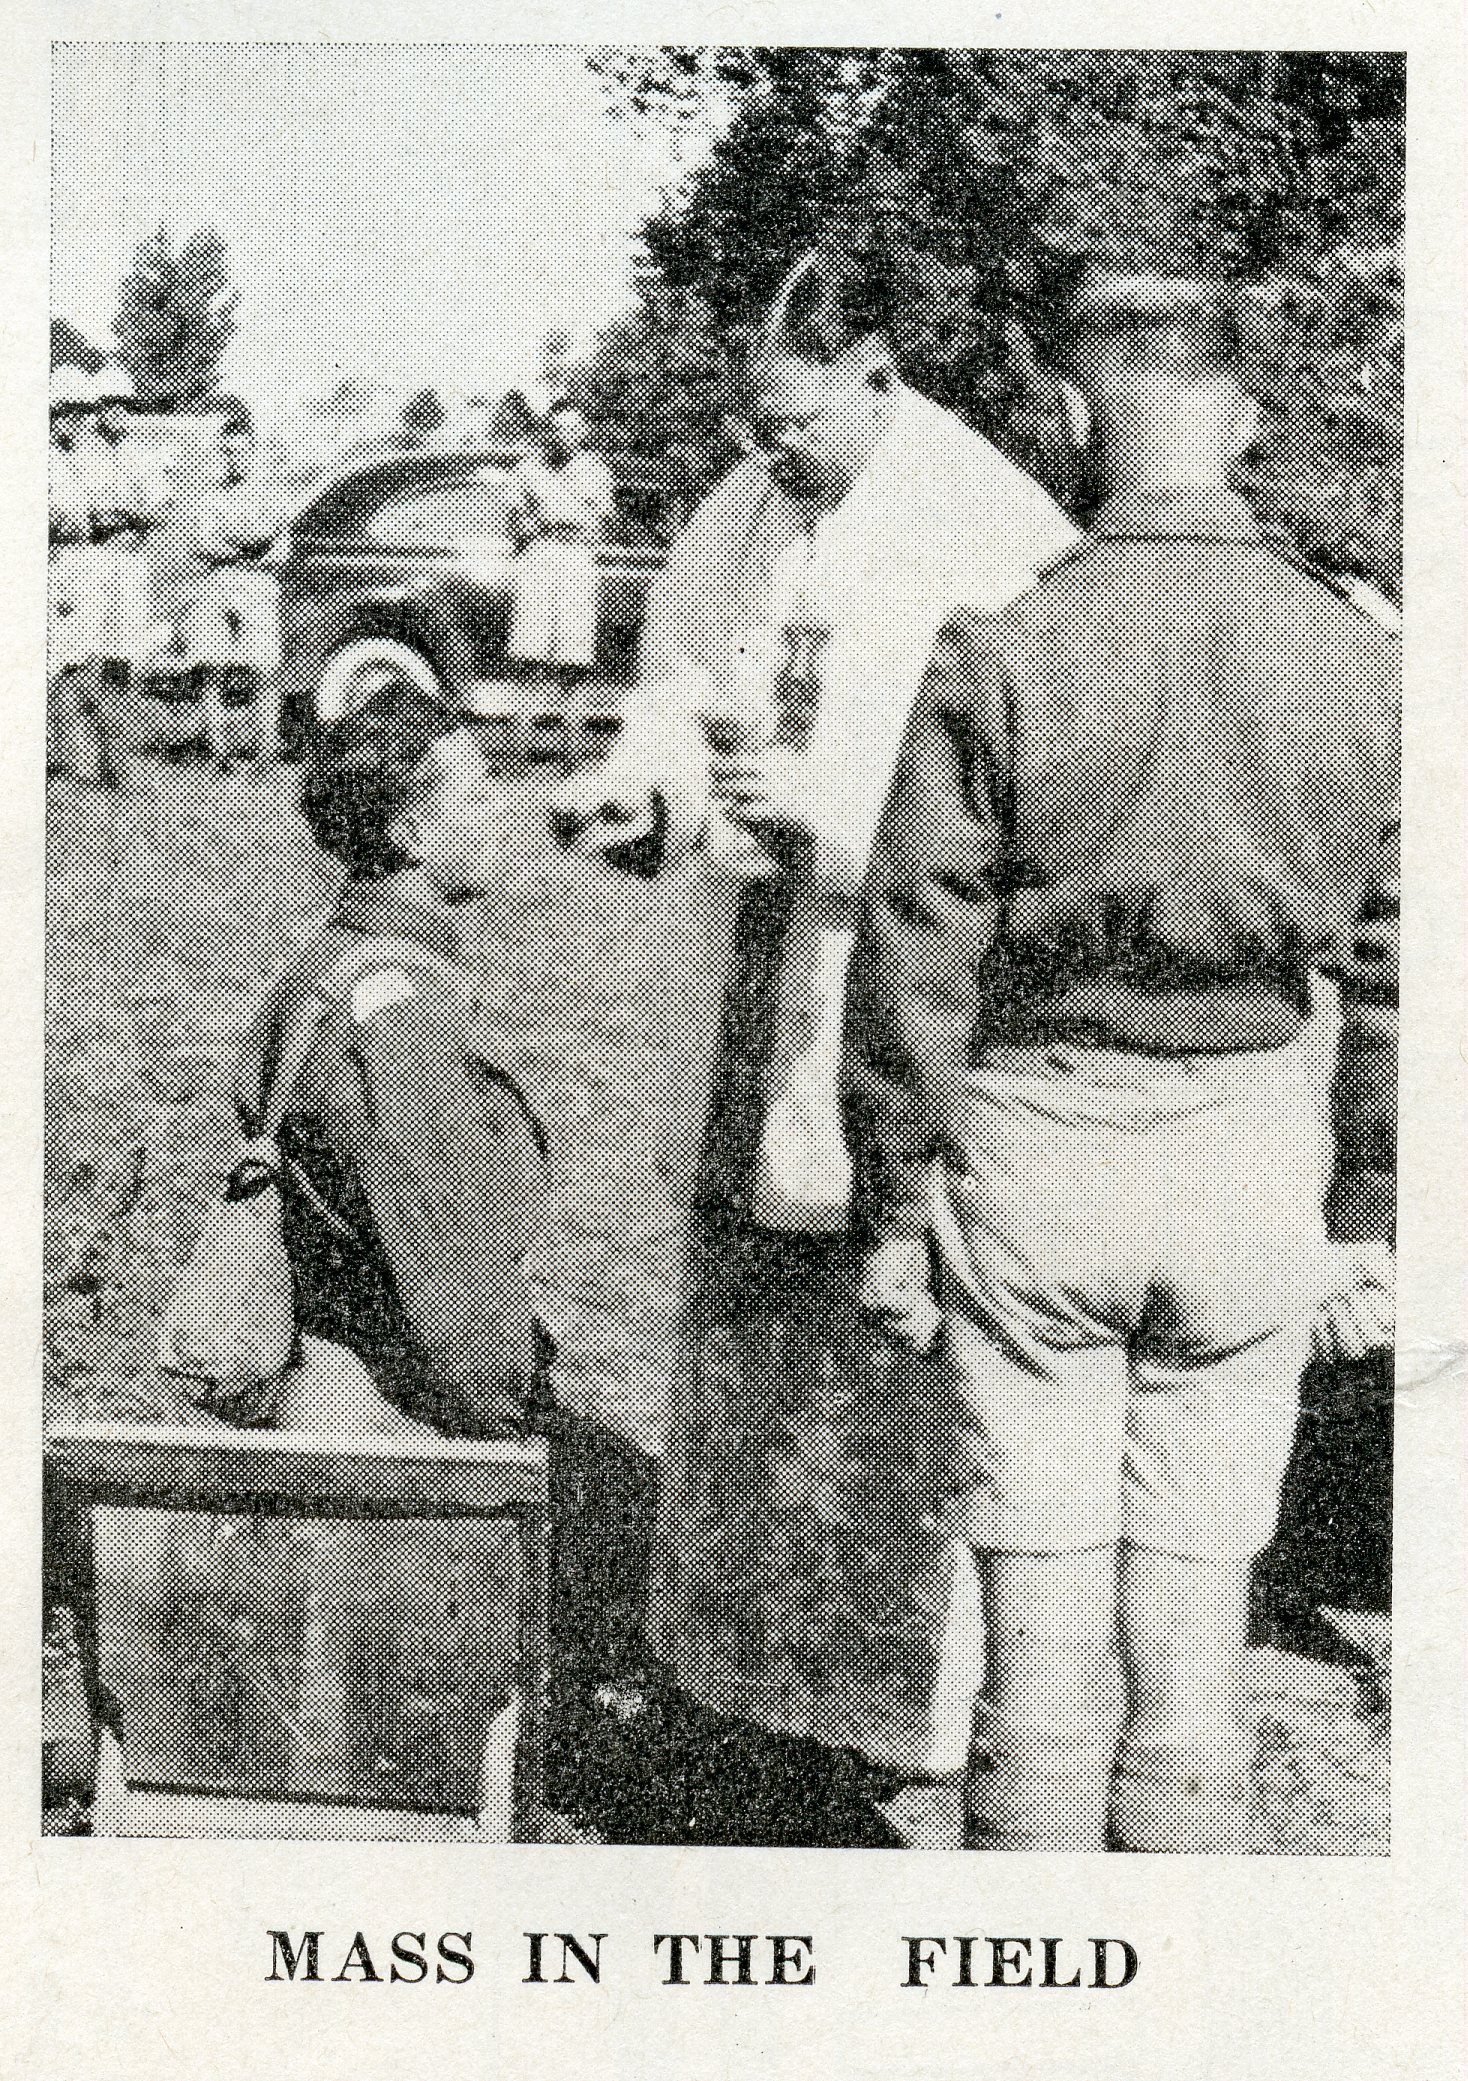 Mass in the field